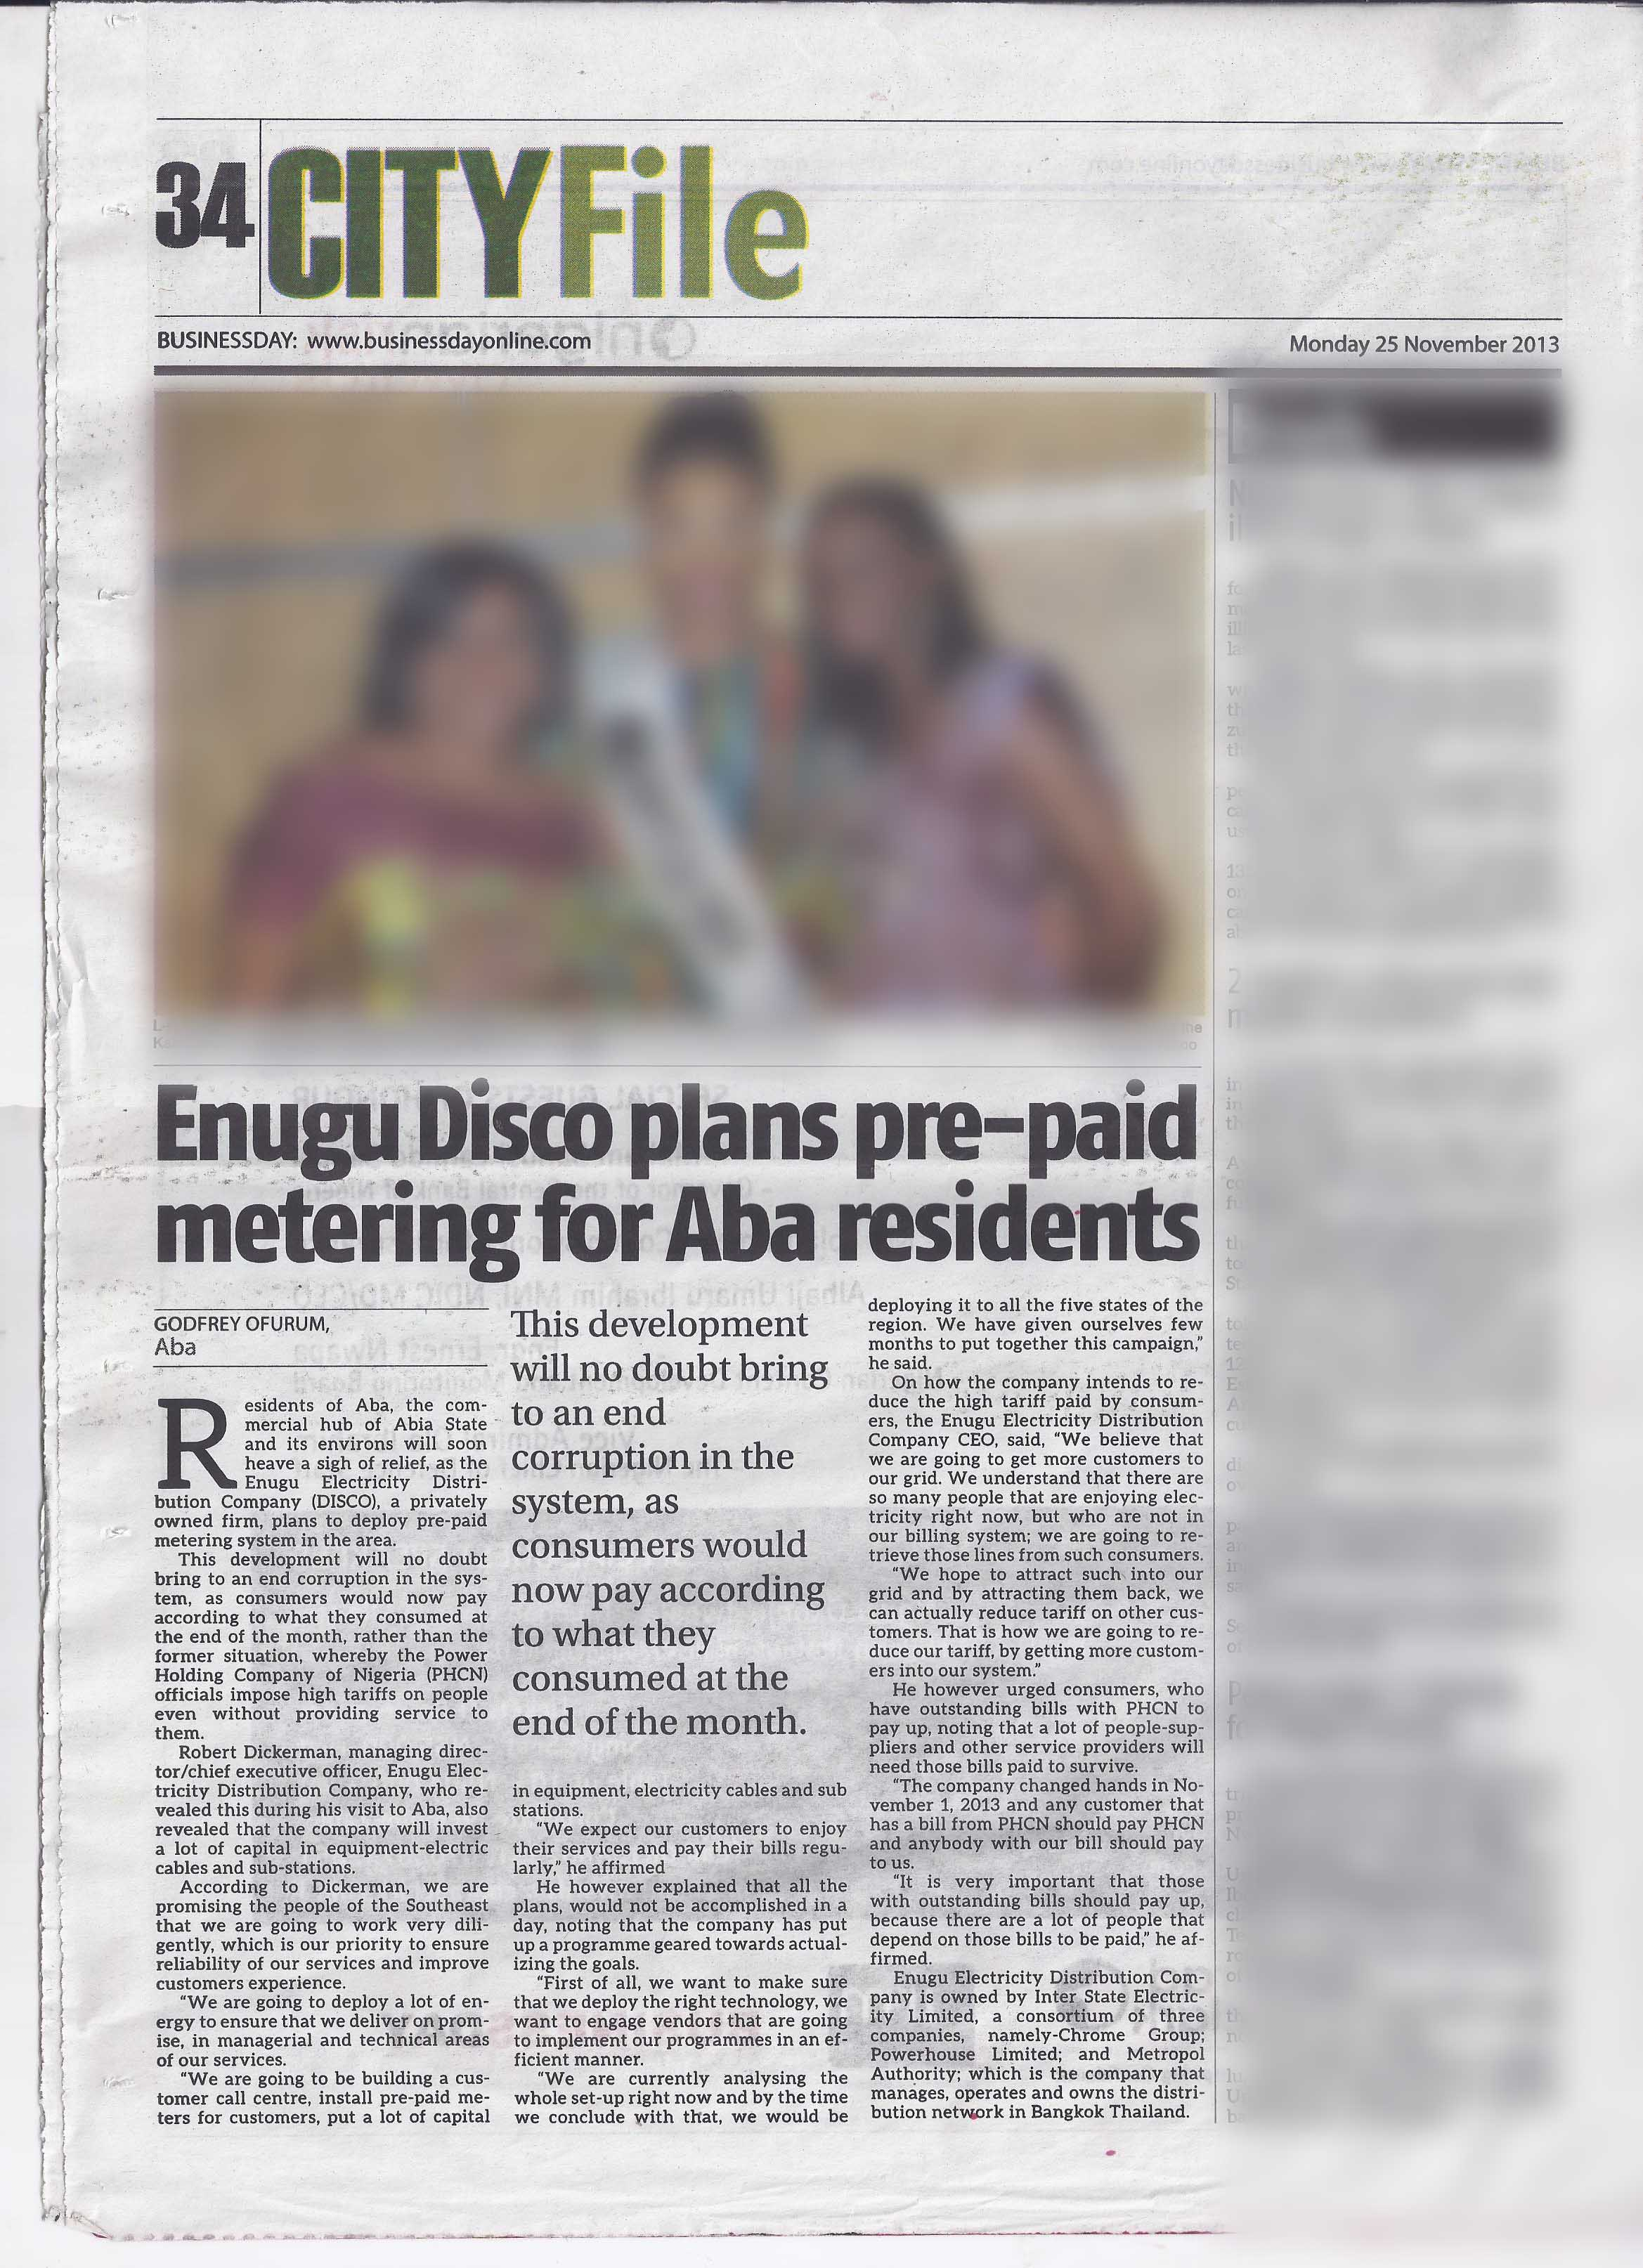 BusinessDay: Enugu Disco plans pre-paid metering for Aba residents